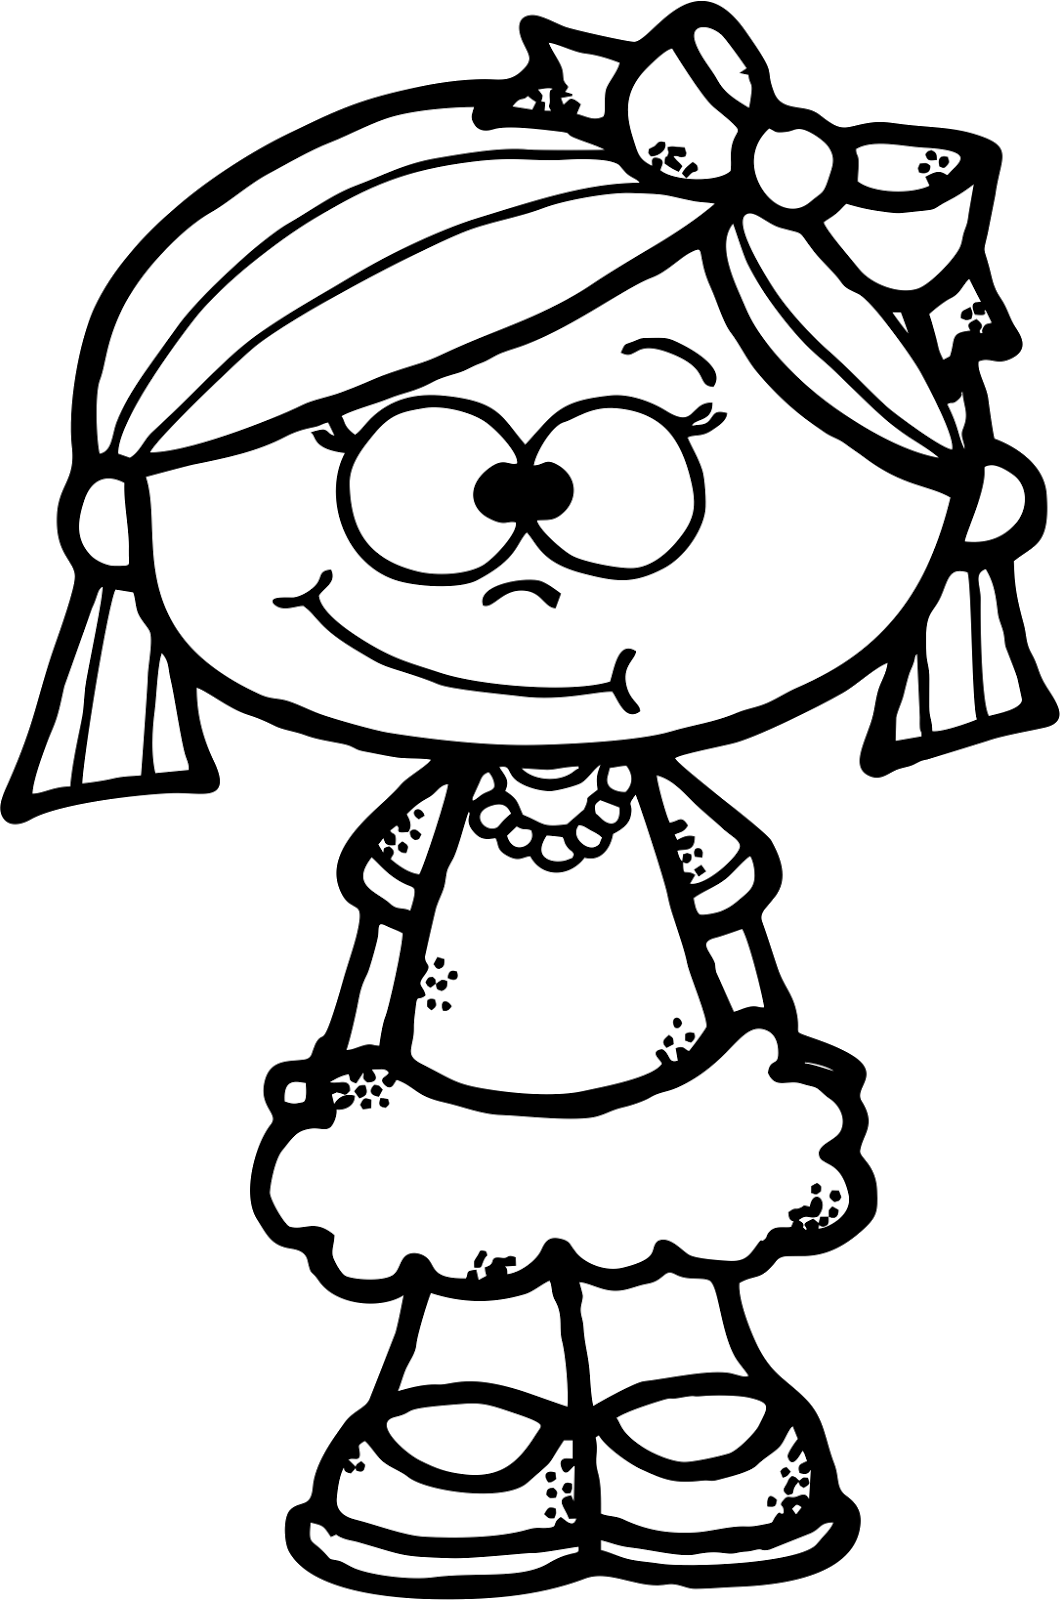 Worksheetjunkie cute girl freebie. Queen clipart colour